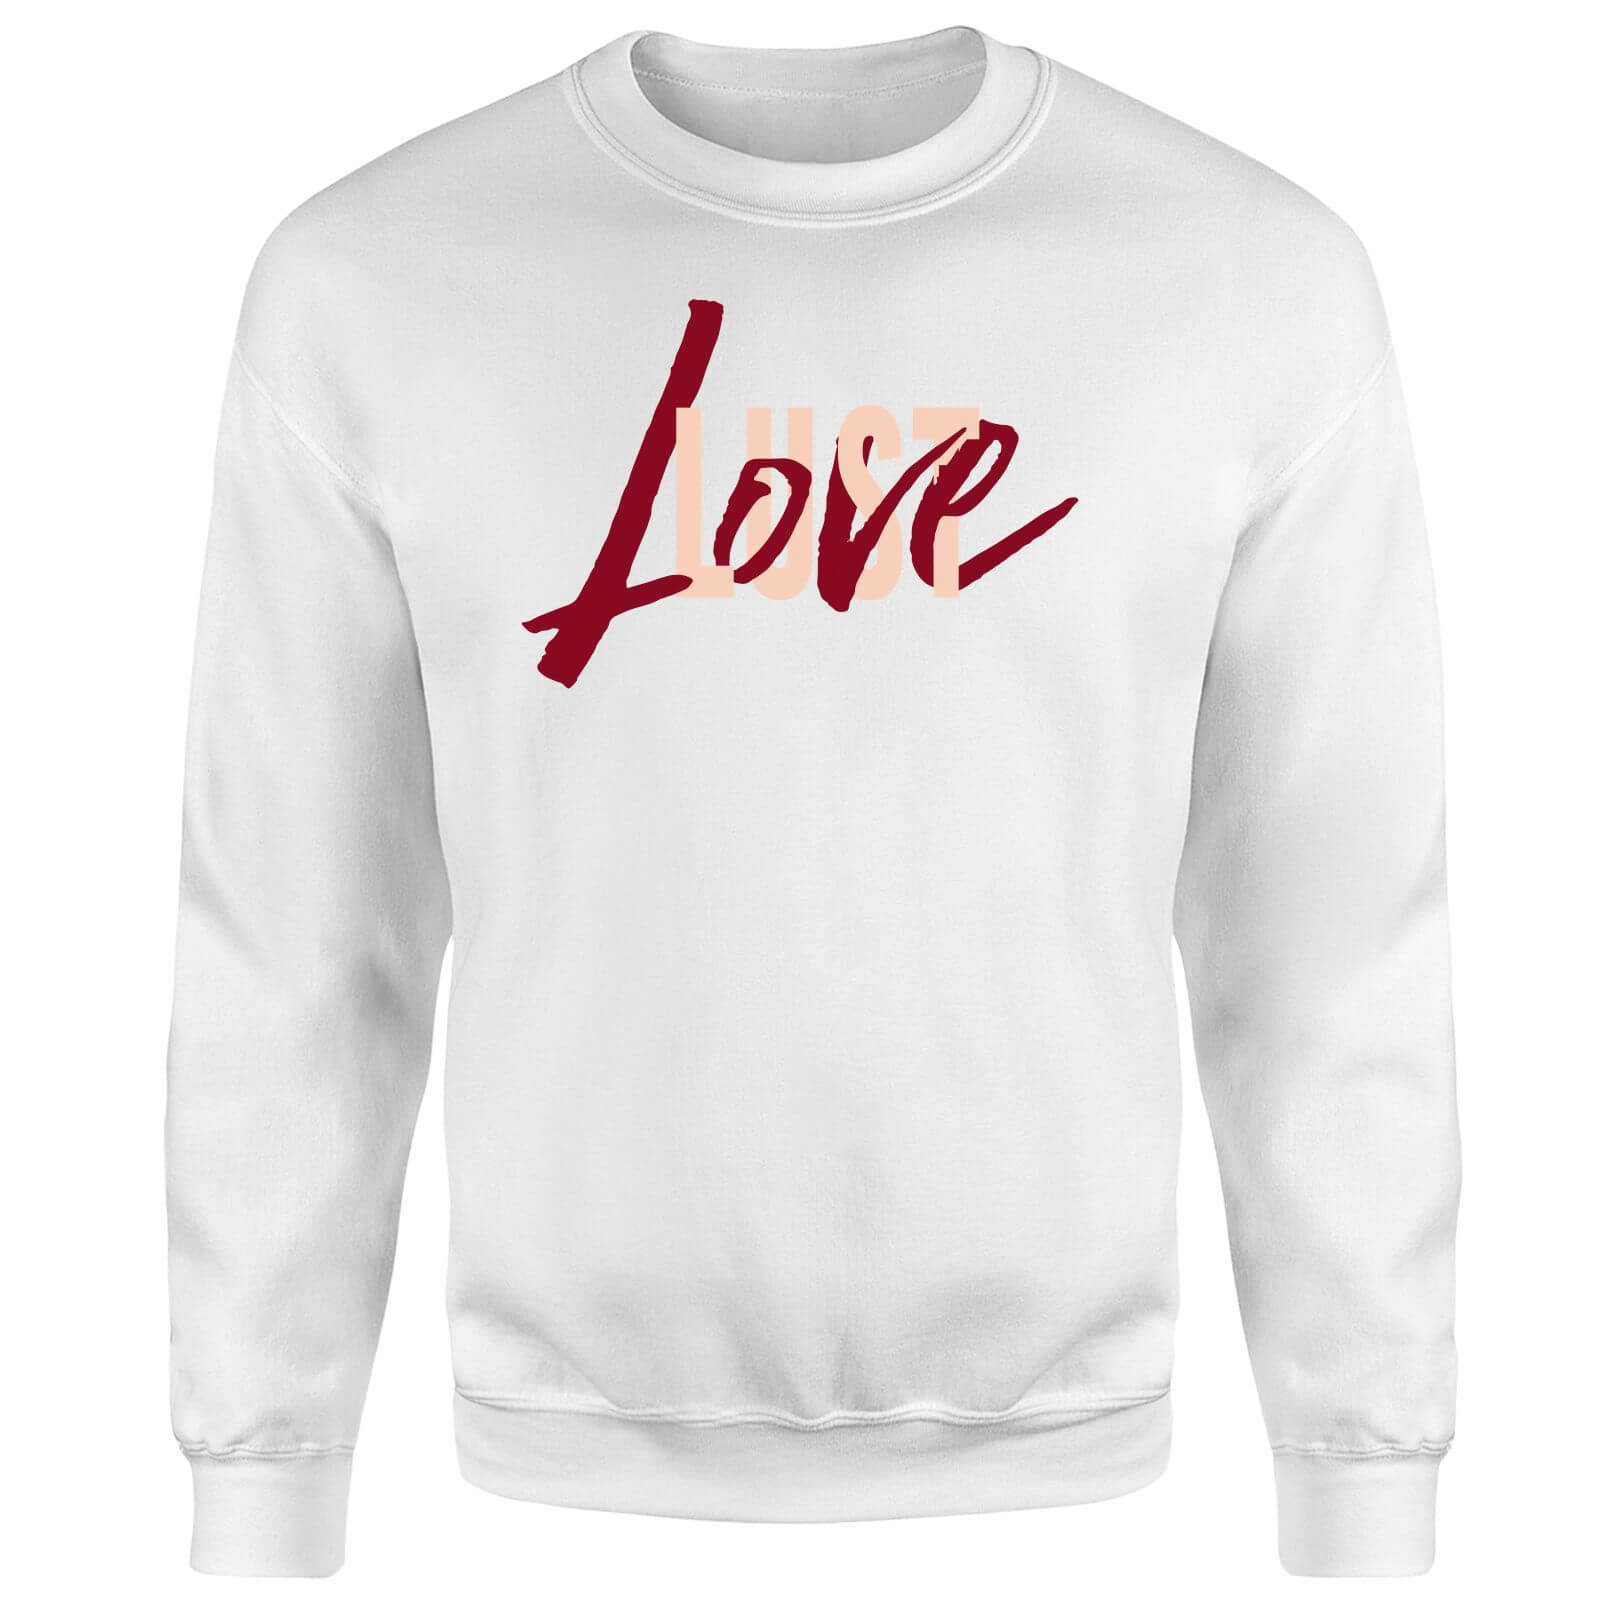 Love & Lust Sweatshirt - White